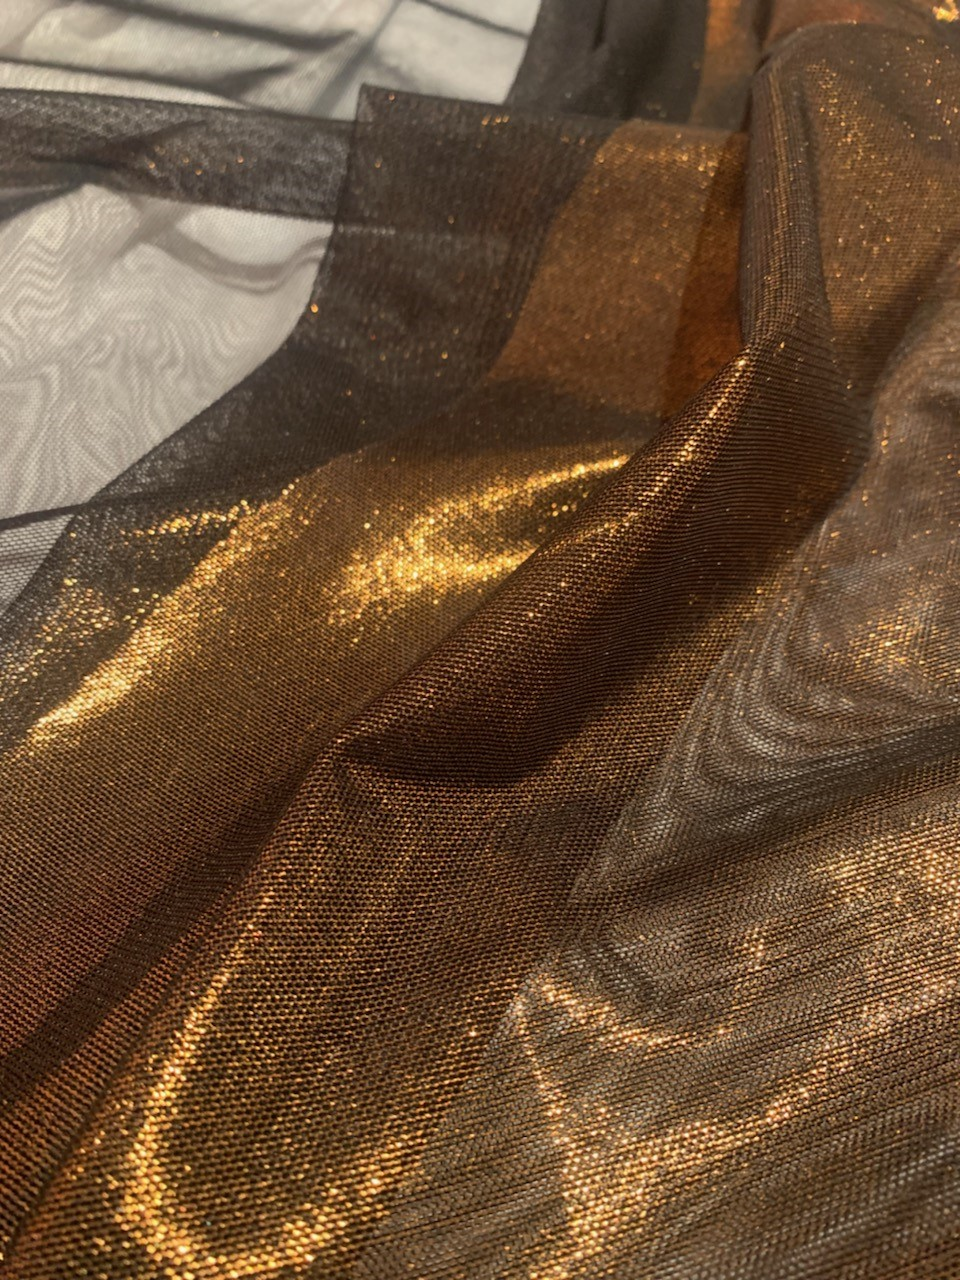 "57"" Black/Copper Foil Power Mesh Fabric By The Yard"